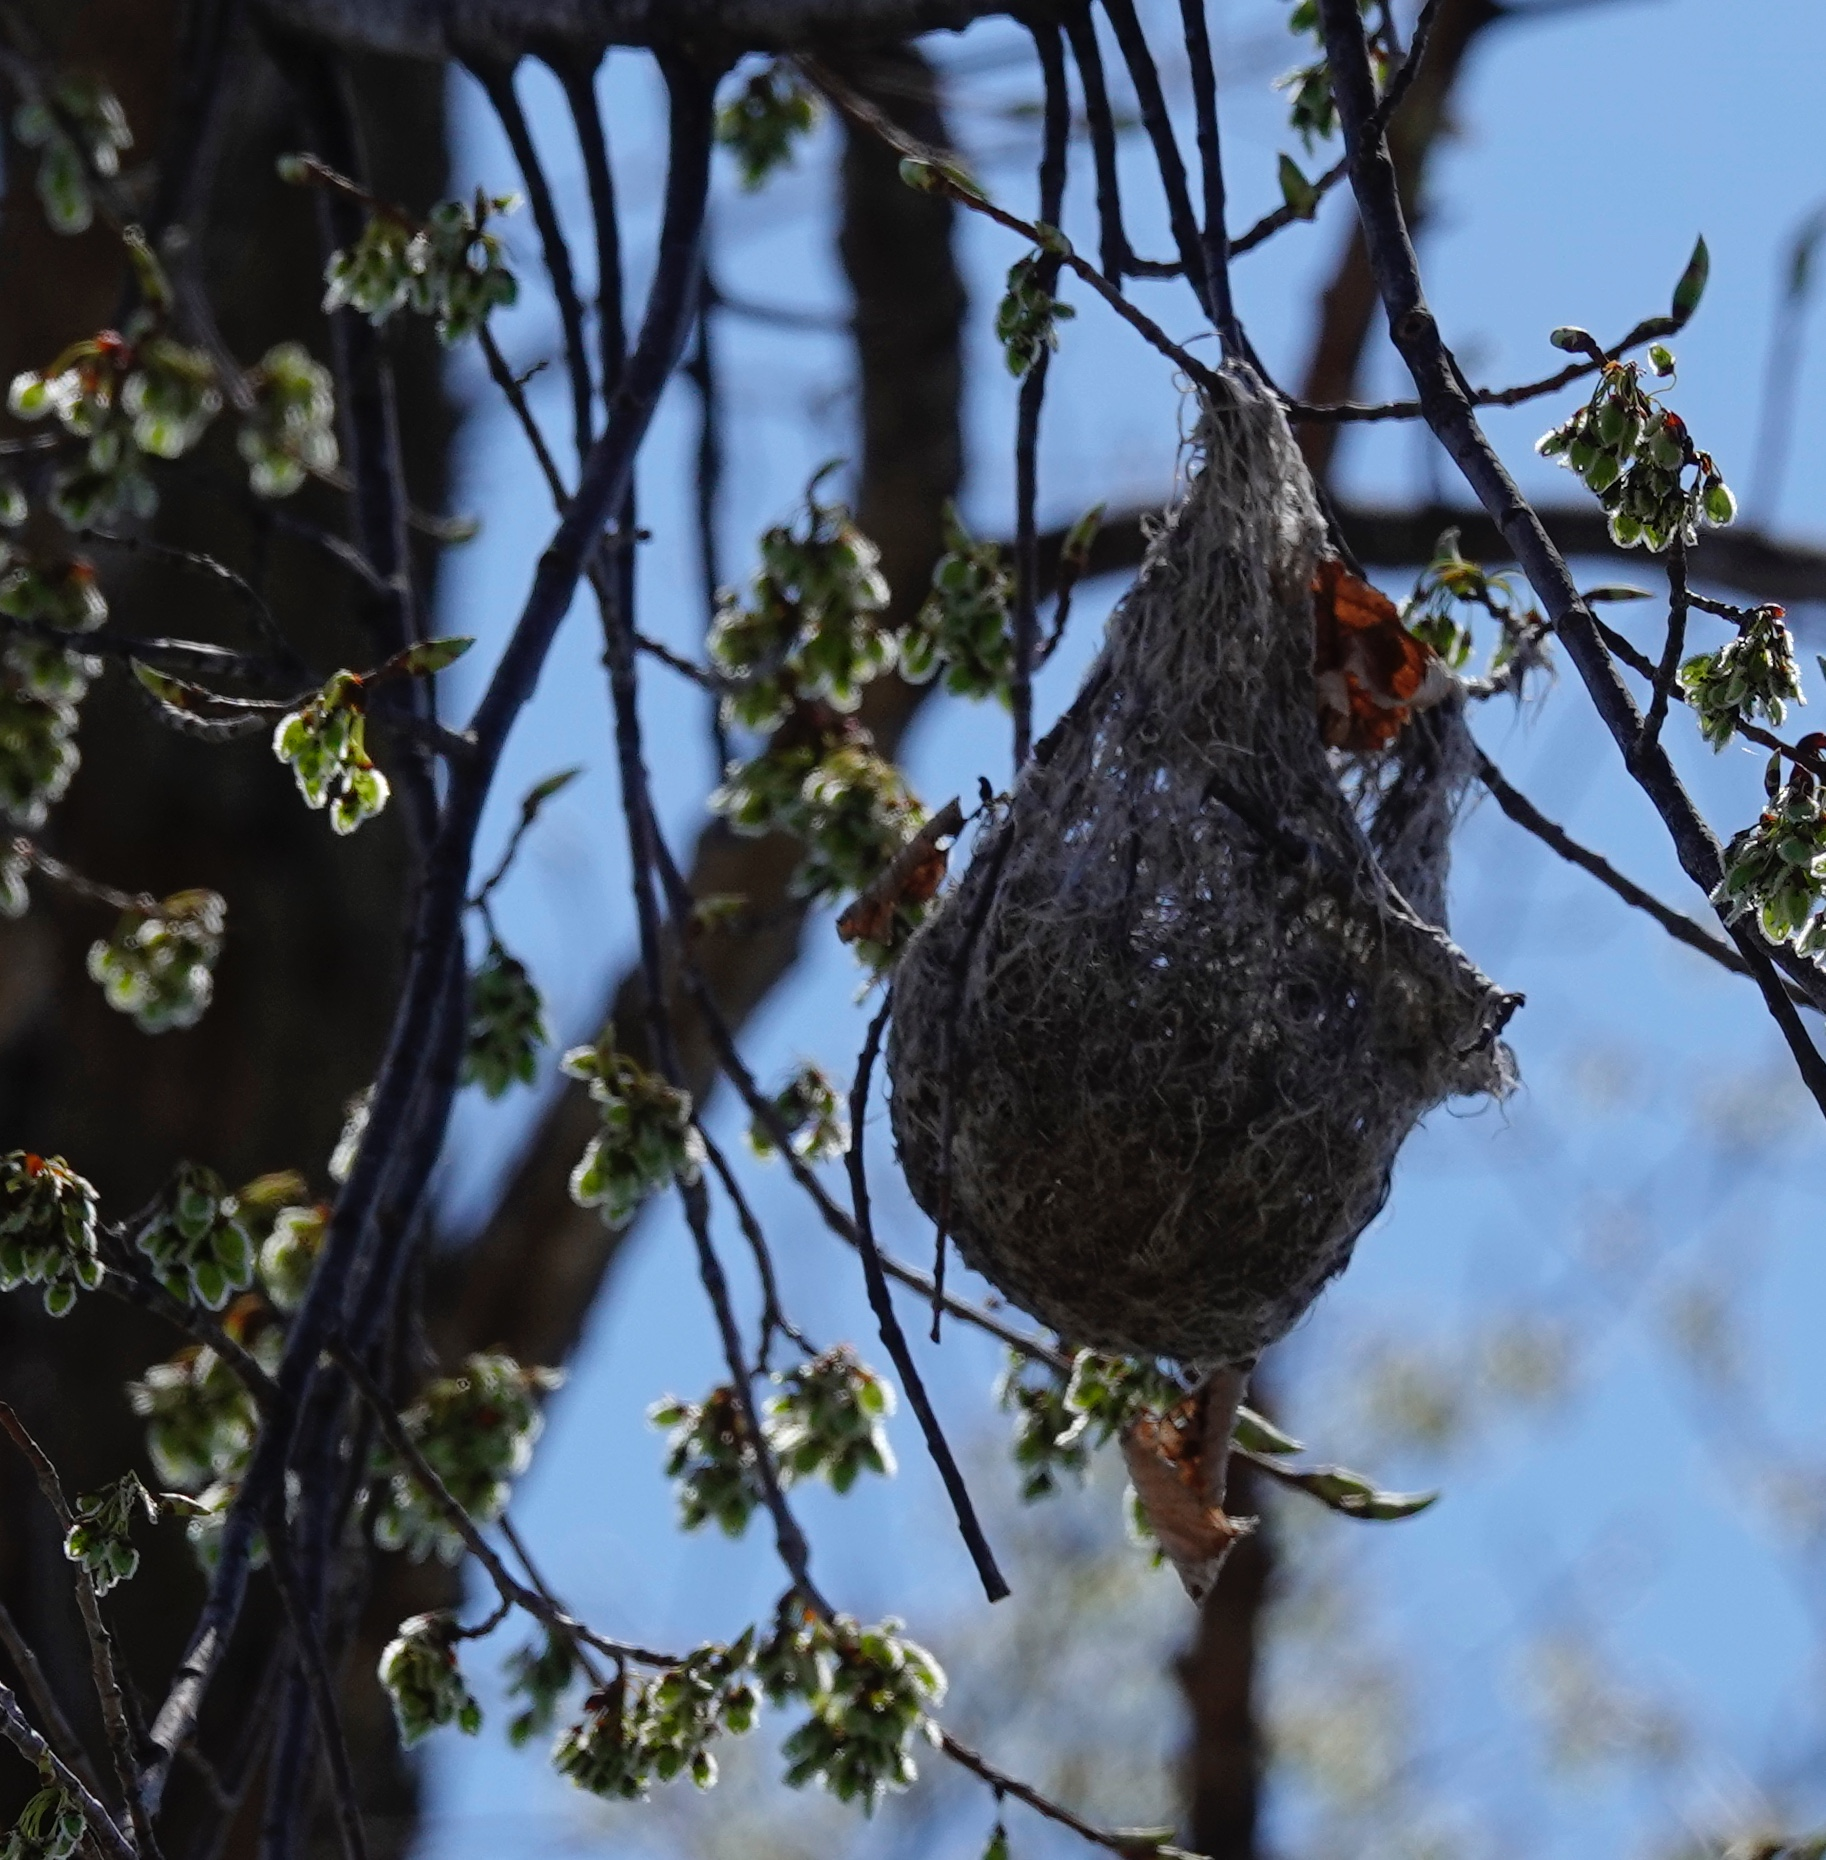 Last year's Baltimore oriole nest hangs high in a tree.